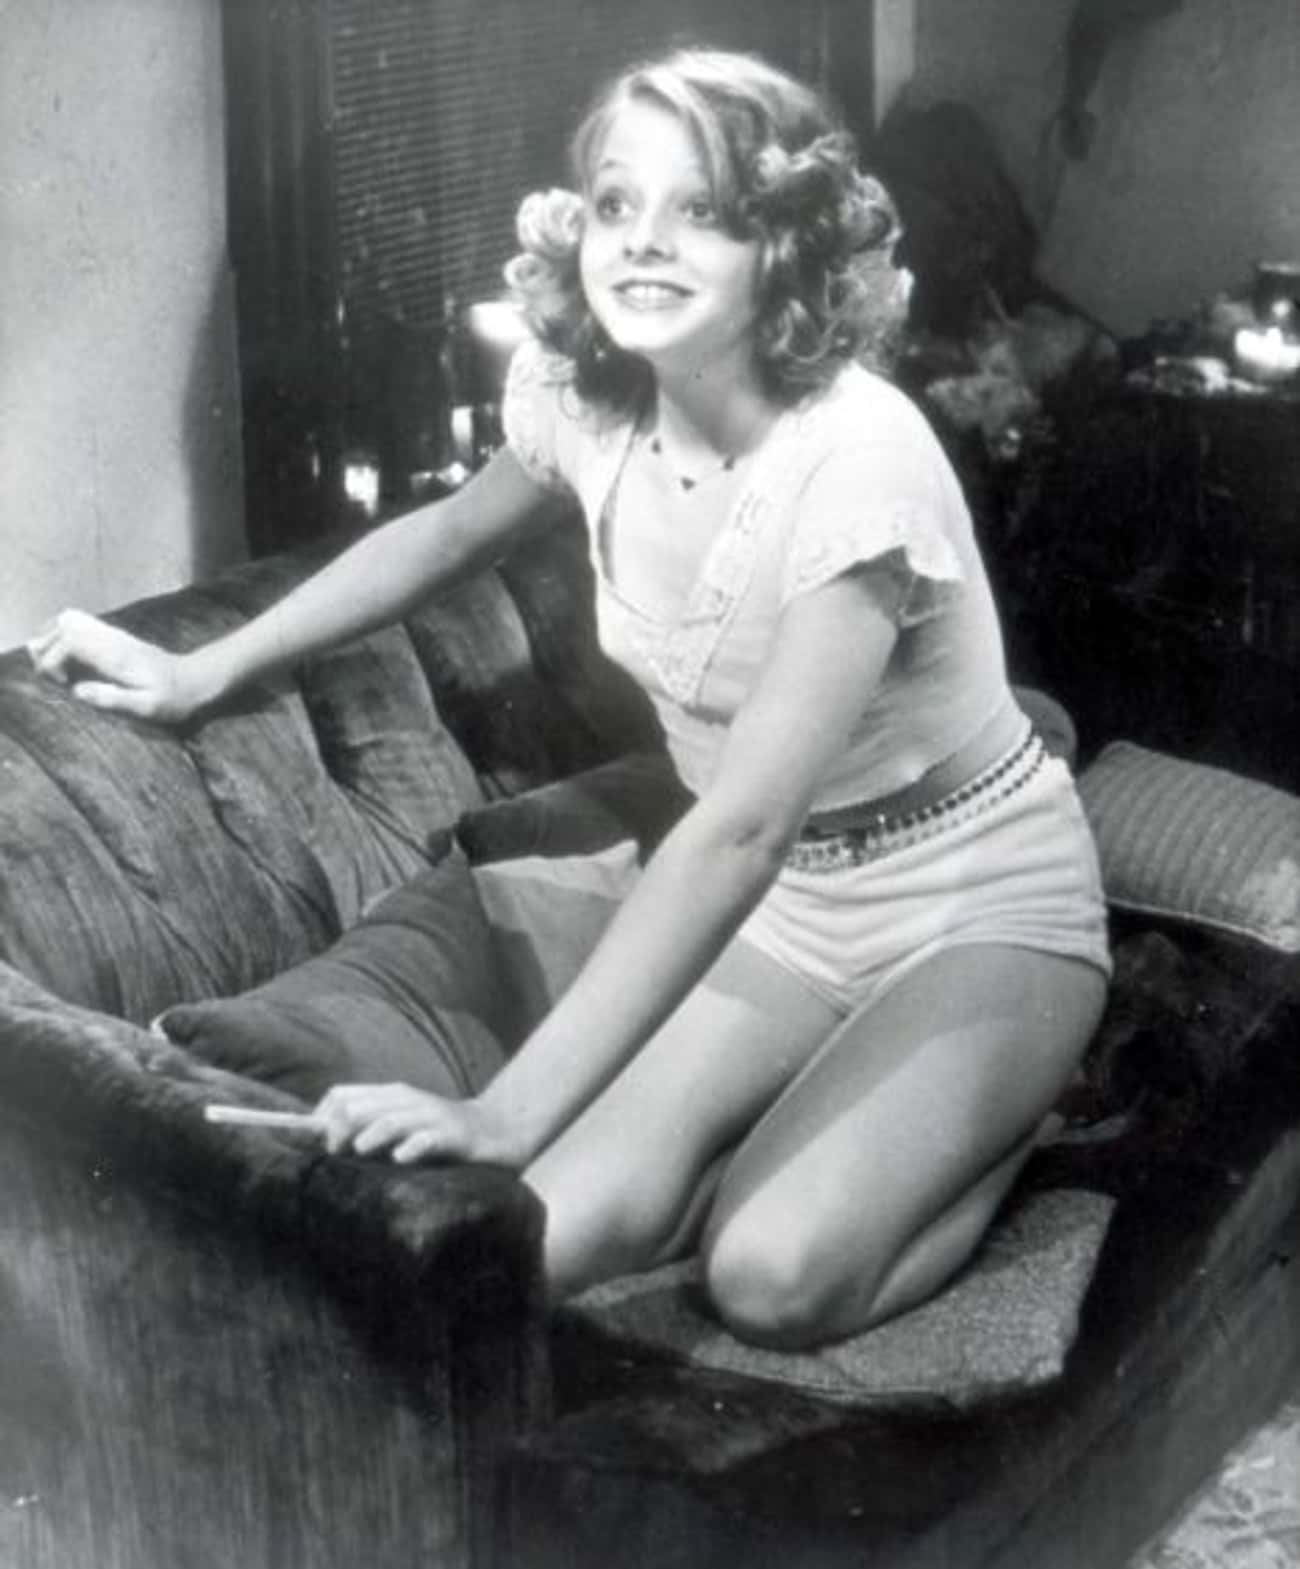 Young Jodie Foster in White Sh is listed (or ranked) 2 on the list 20 Insanely Cute Pictures of Young Jodie Foster